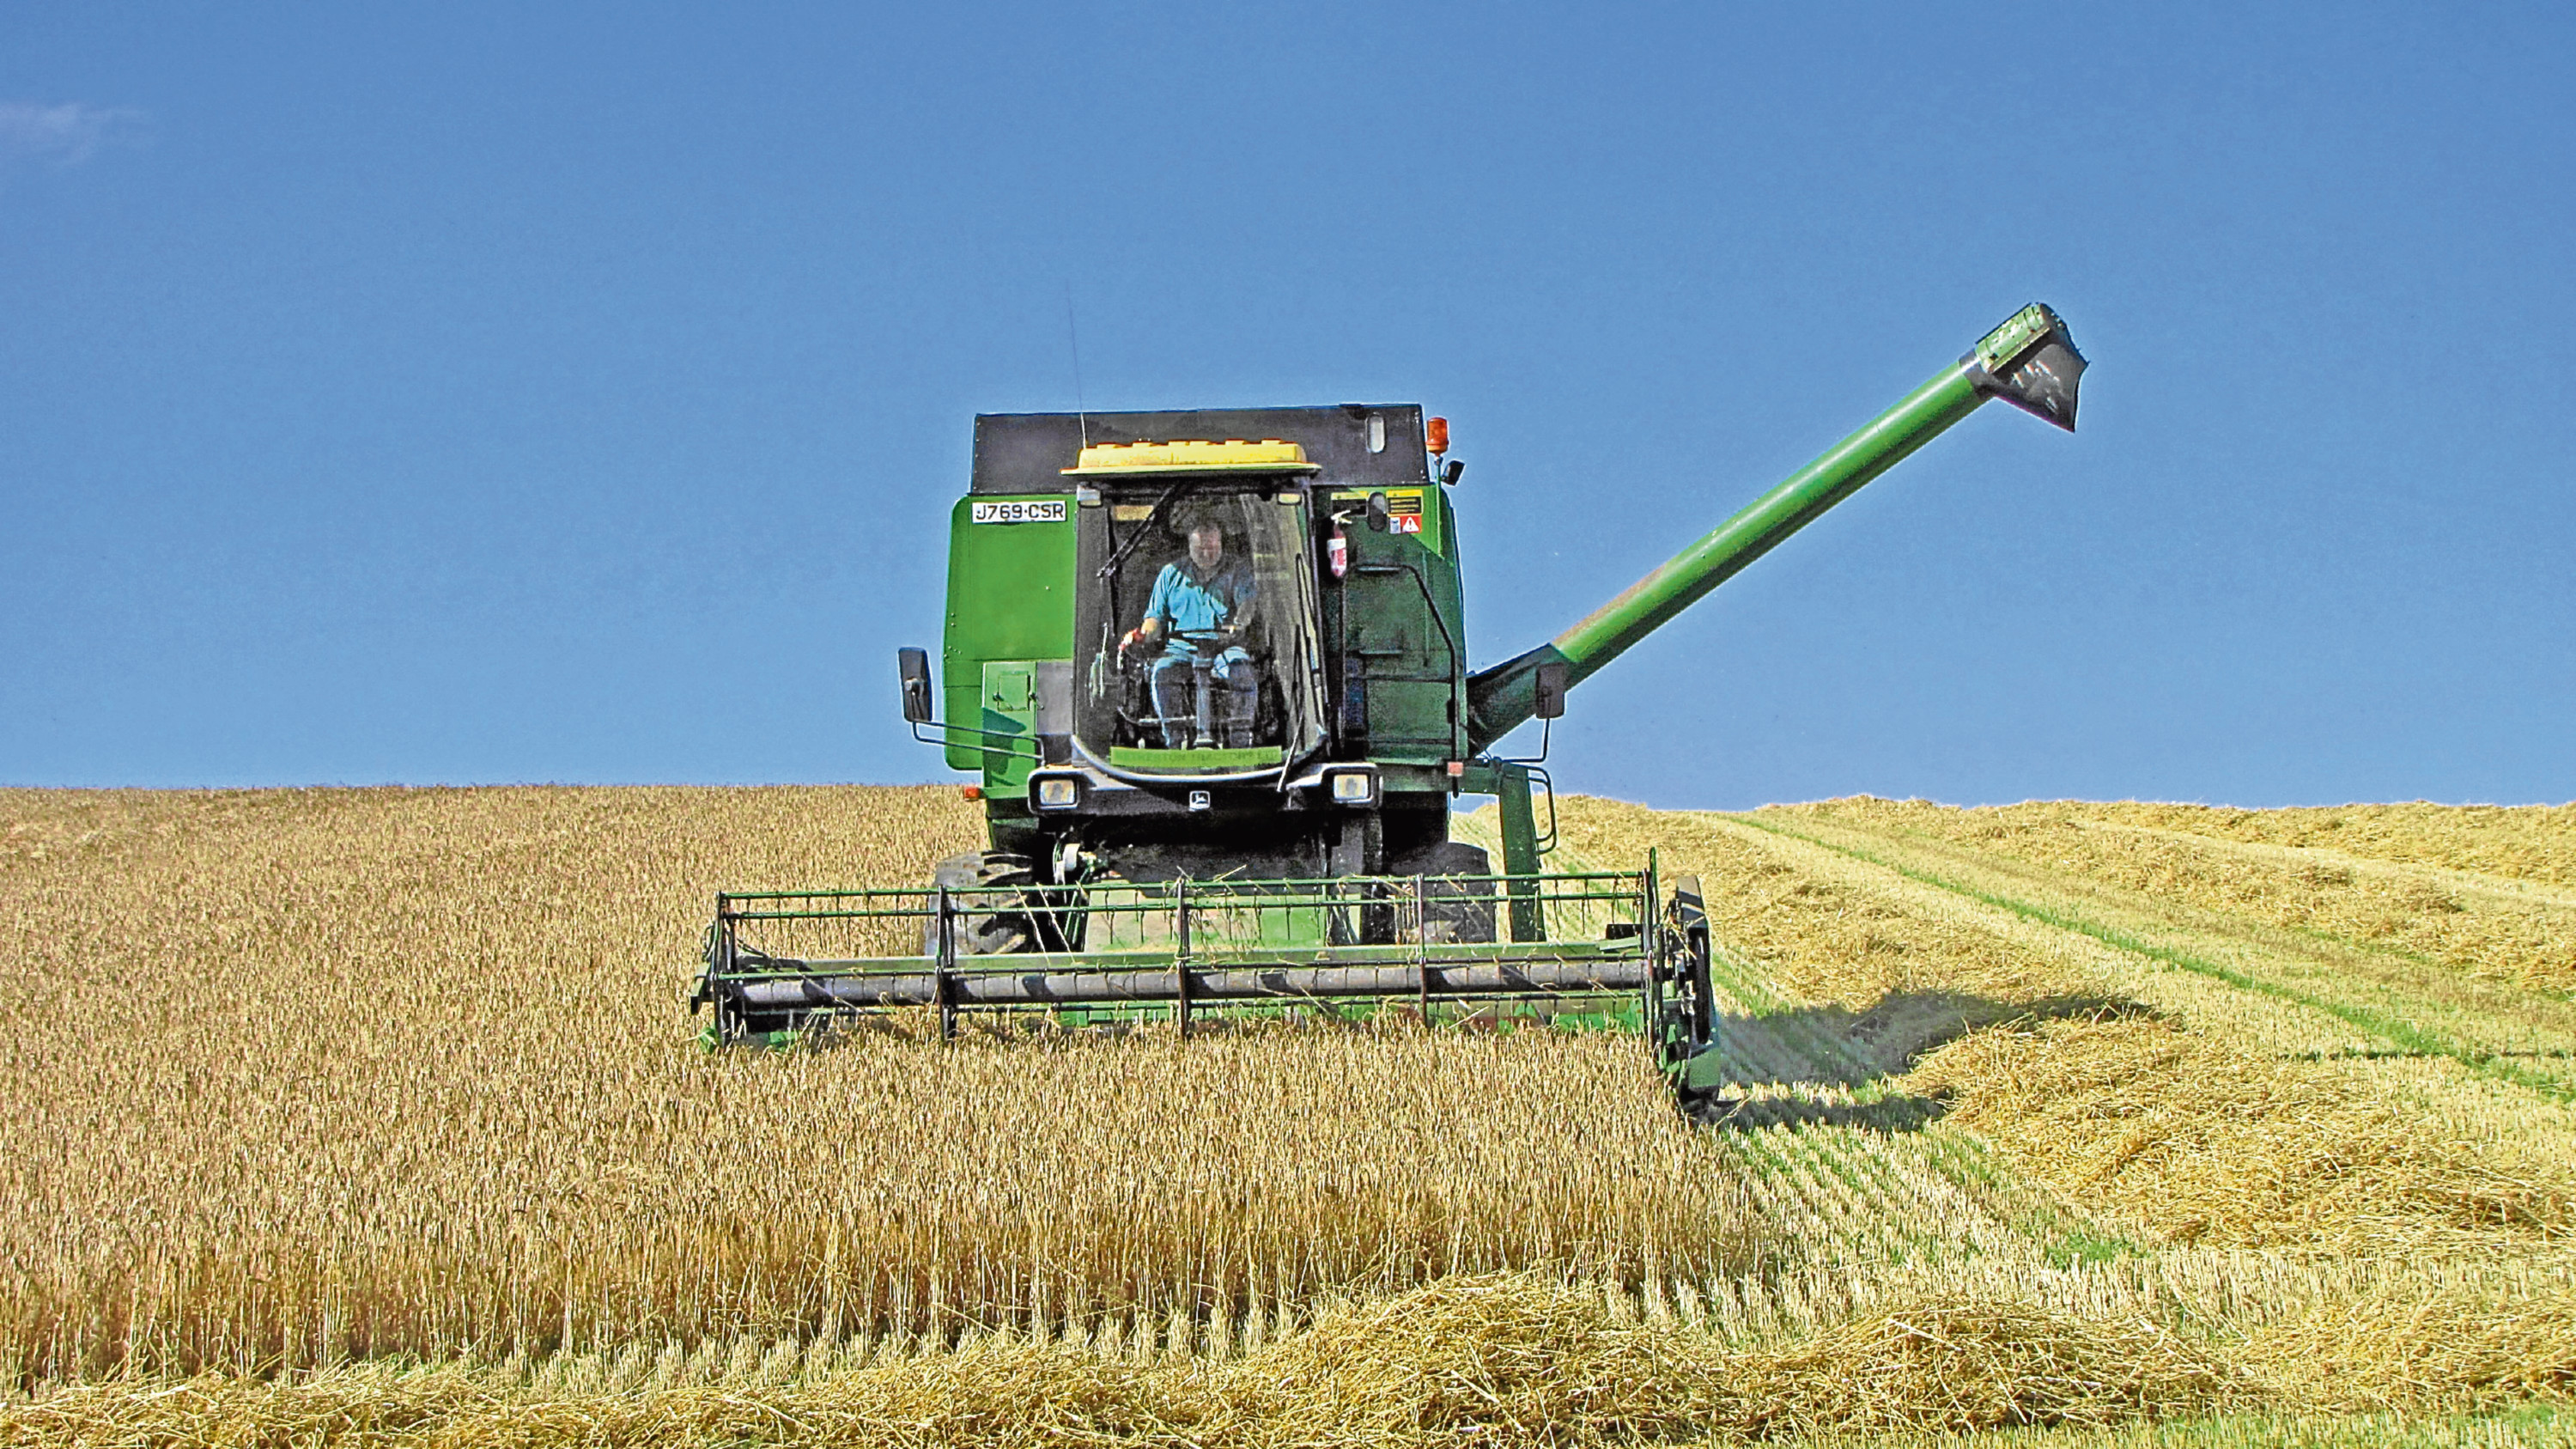 A combine harvester at work in a field near Kingoldrum, Angus.